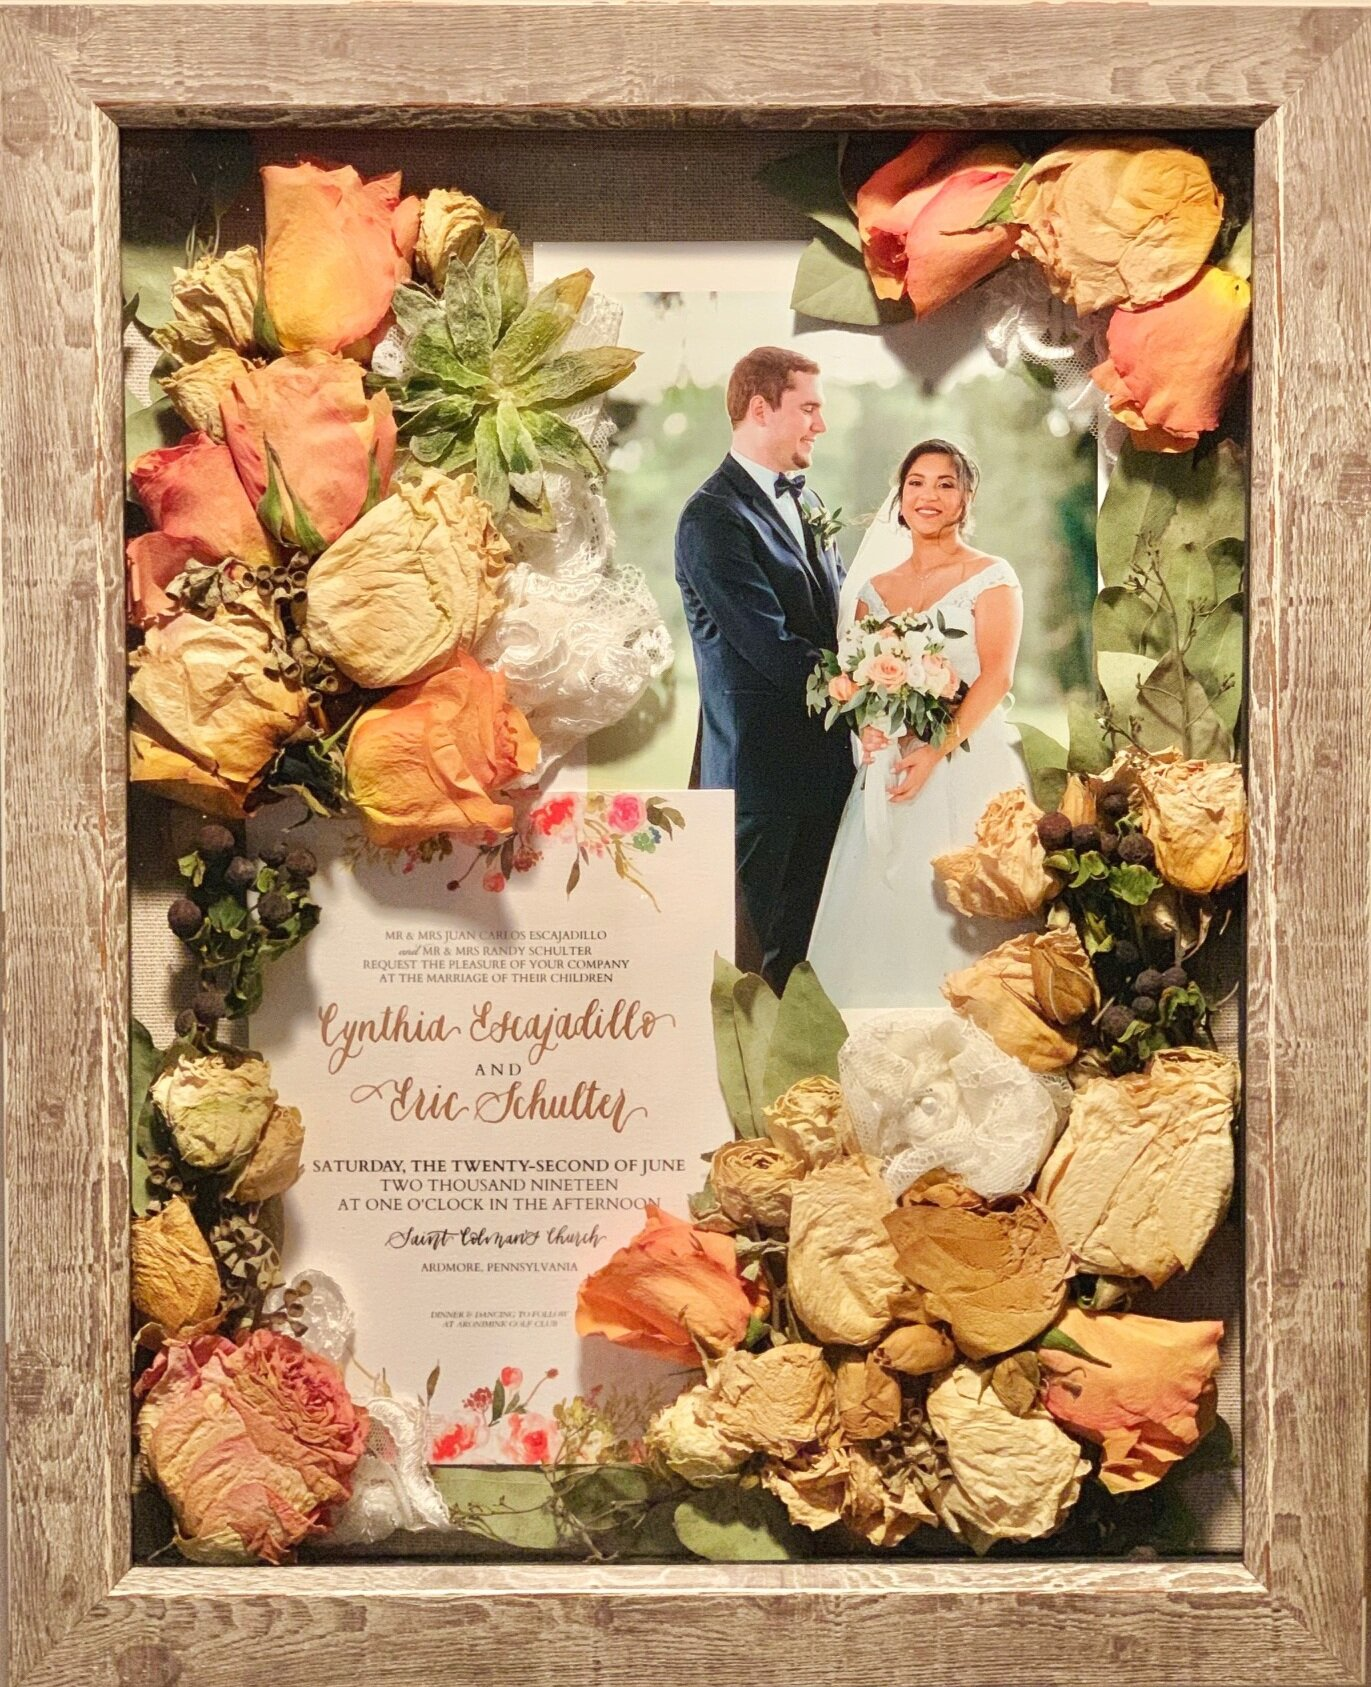 """Preserved (not pressed) bouquet from wedding. 11""""x 14"""" reclaimed barn wood frame with 5 x 7 print of bride and groom on the wedding day. Brides can deliver bouquets, invitations, photos, swatches of dress fabric, groom's boutonnieres, cuff links, etc to be preserved in a frame or hanging shadowbox. See  Contact Page  to inquire about preserving flowers from weddings, proms, recitals, engagements, funerals, etc. For other examples of work, click  here ."""